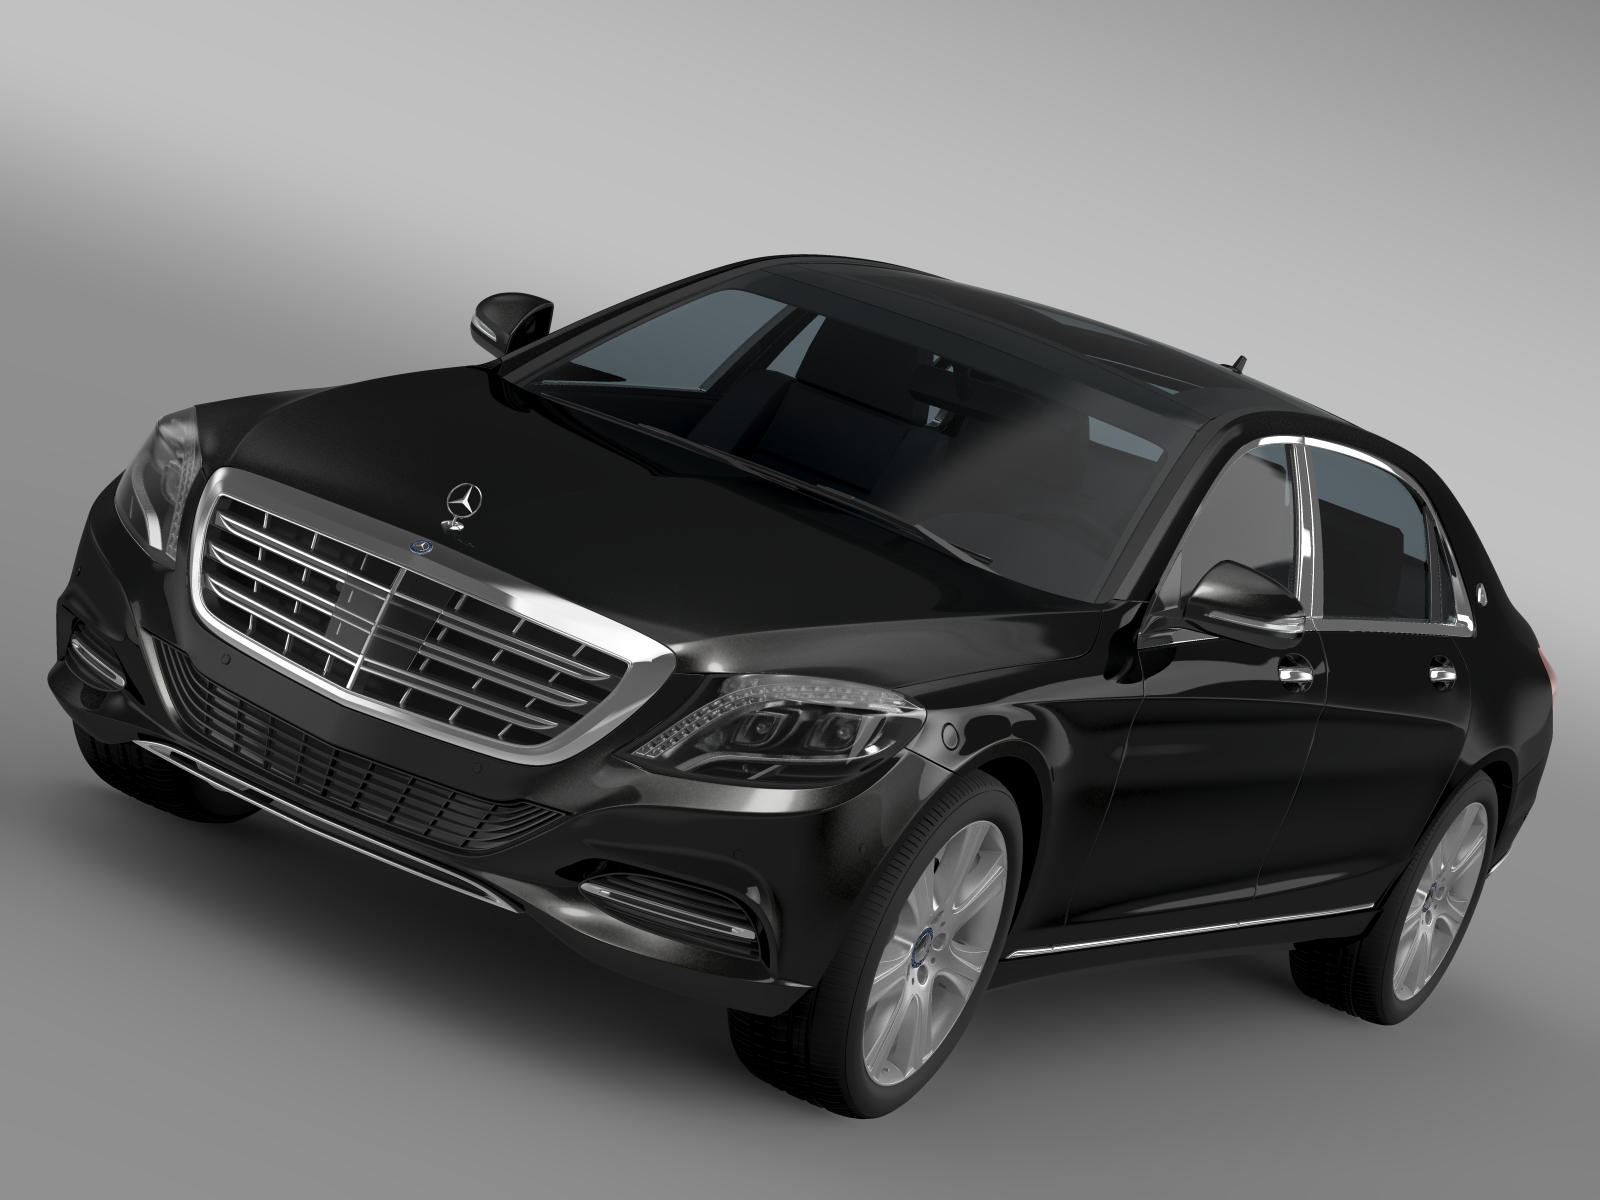 mercedes maybach guard s600 x222 2016 3d model 3ds max fbx c4d lwo ma mb hrc xsi obj 219540